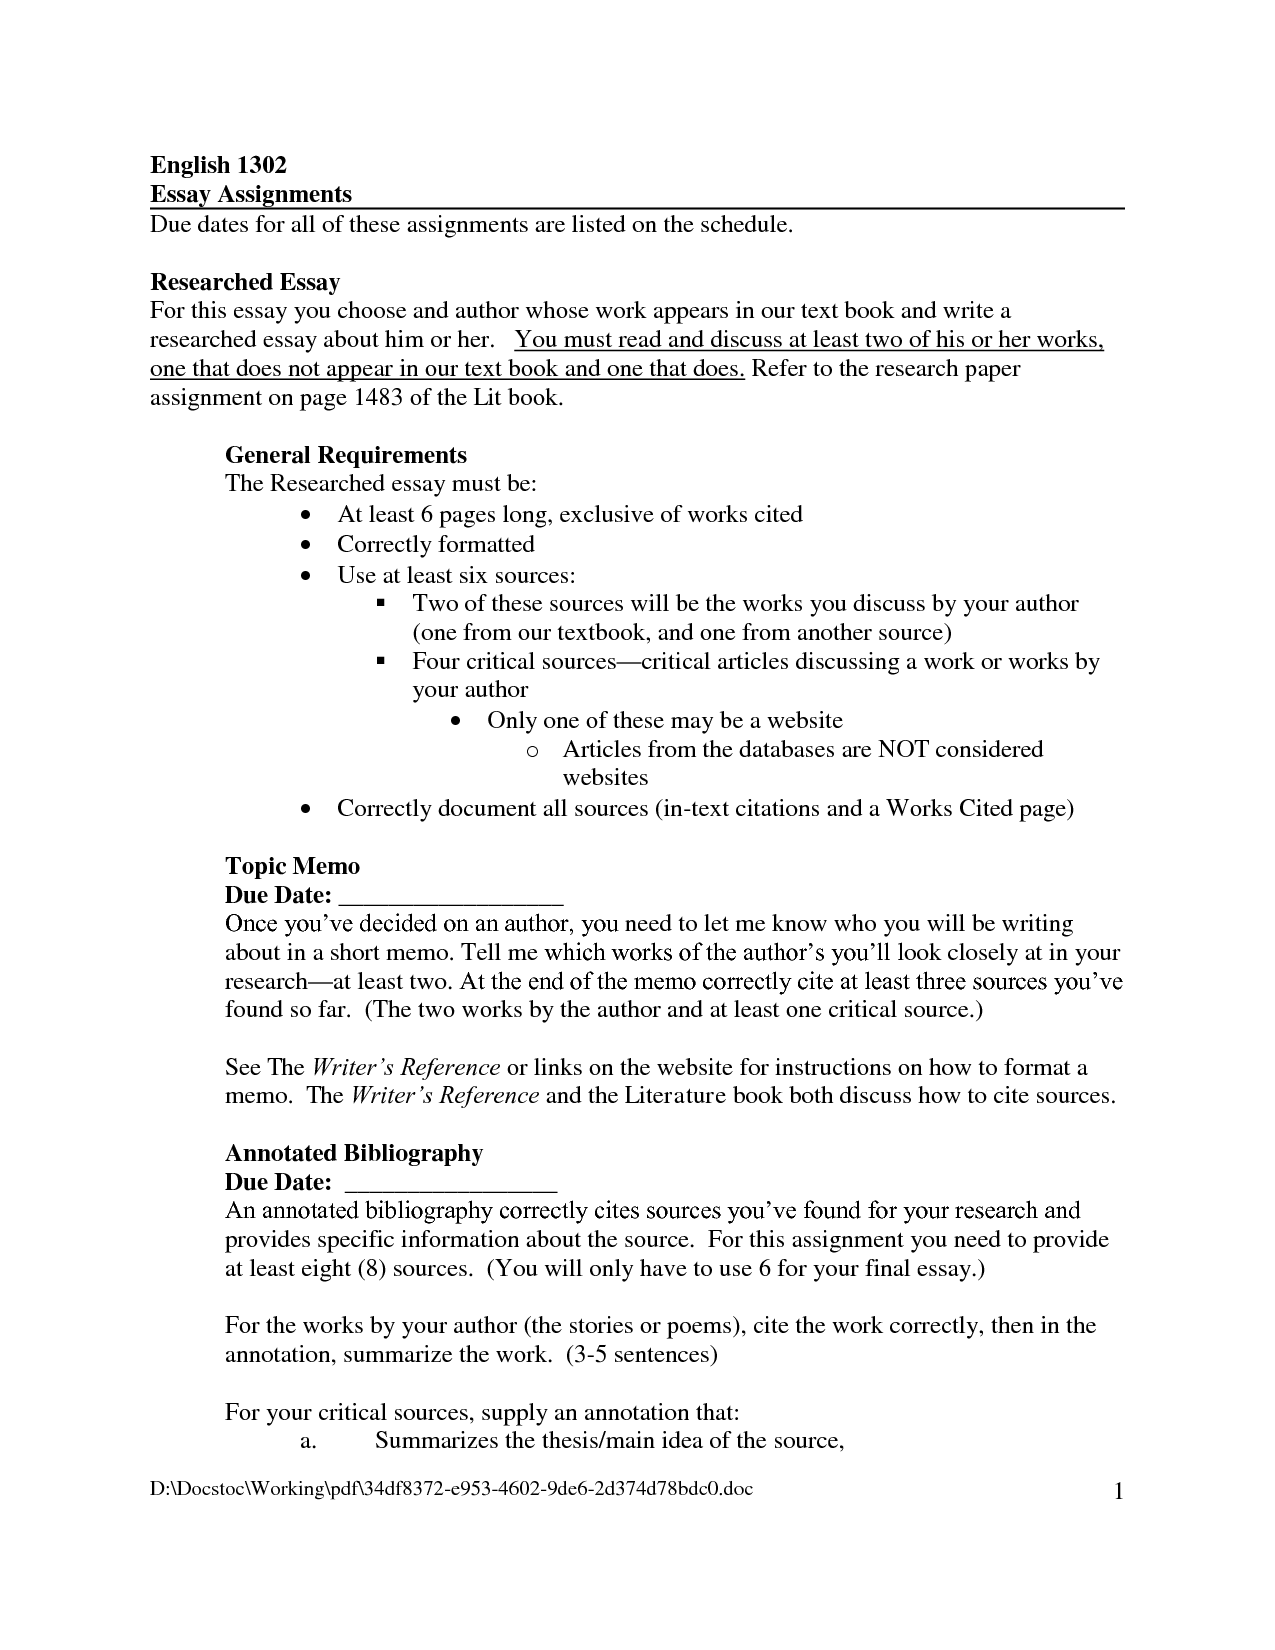 006 How Startography Essay Research Paper Outline On Of Yourself Autobiography An Old Book Sample Public Servant Short Hitler Tree Patient Family School Abraham Lincoln Pen Sigmund To Formidable Start A Biography Write About 5 Paragraph Good Full